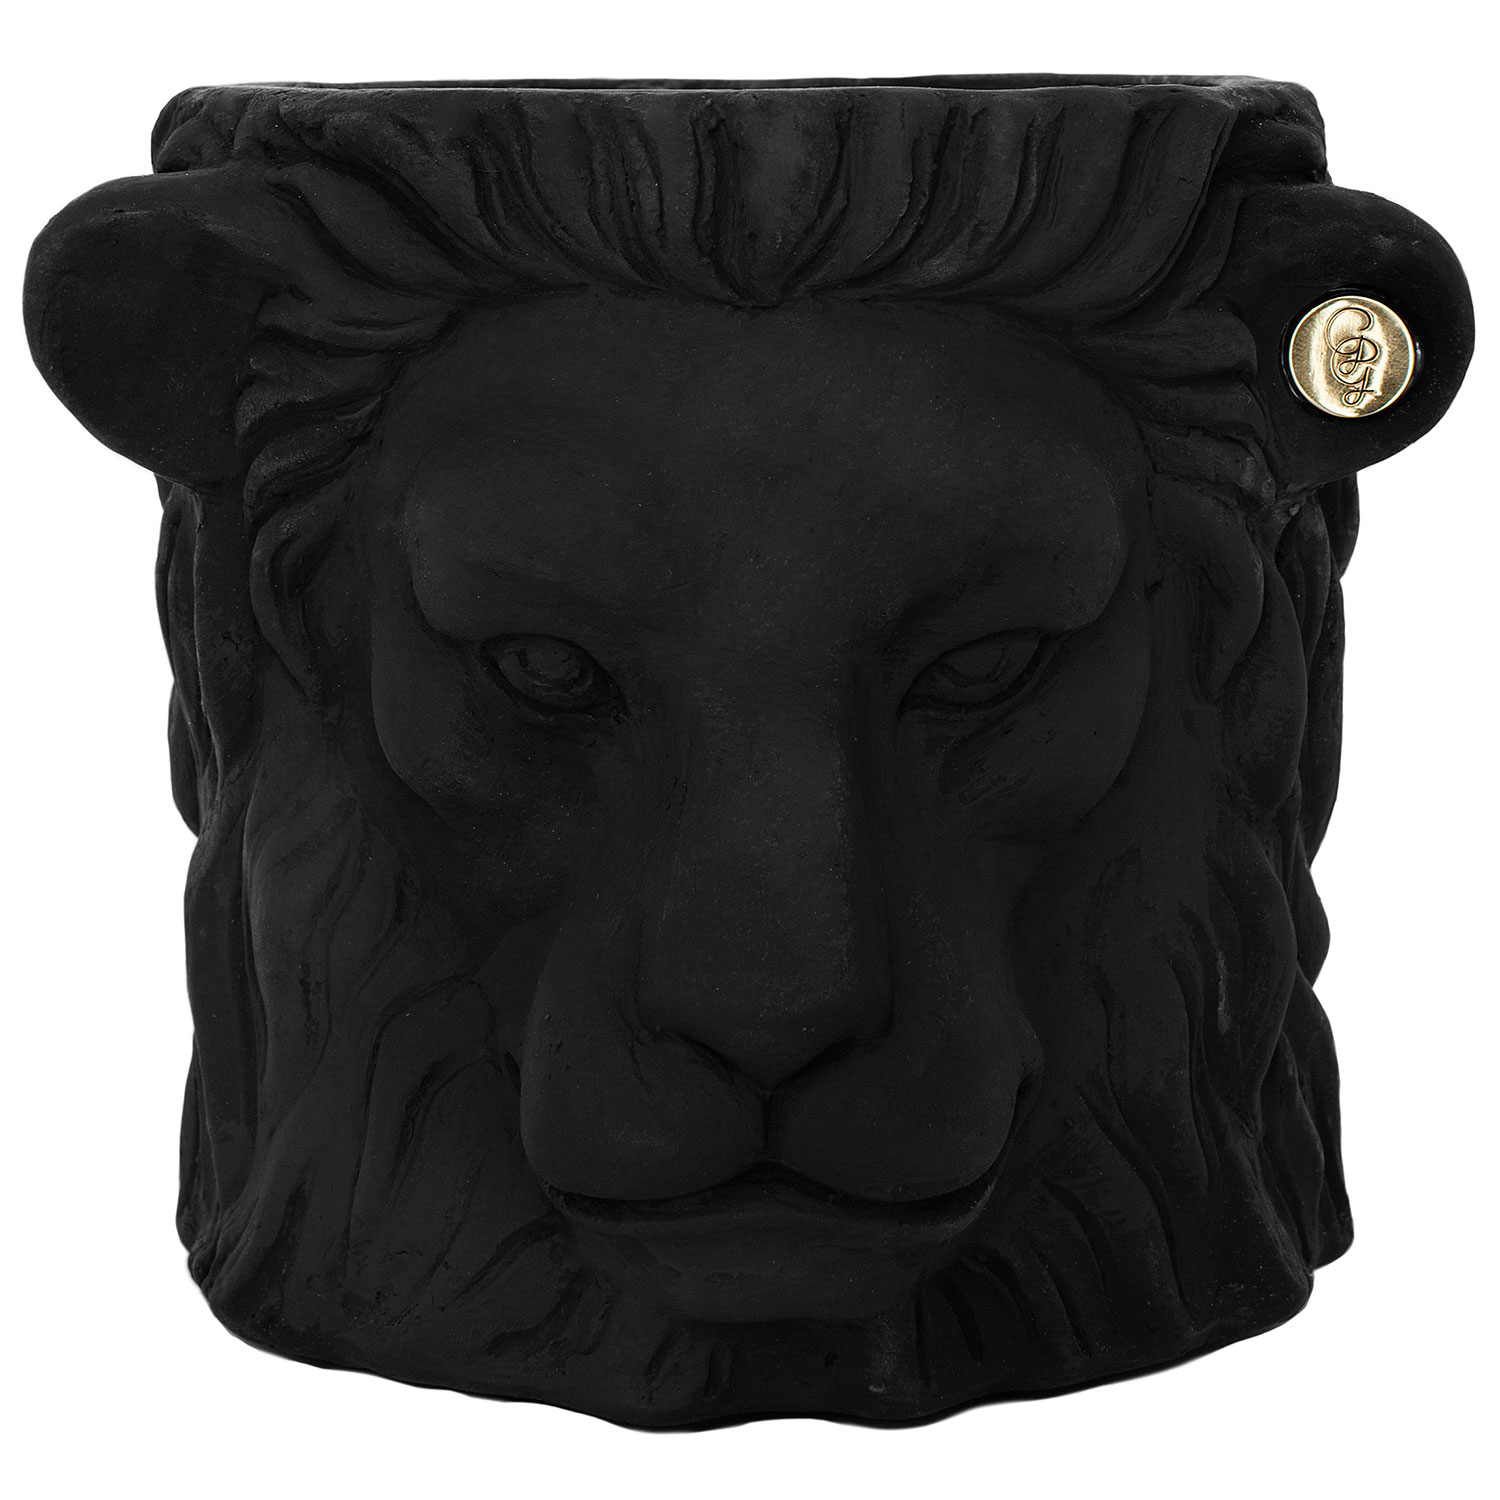 Bilde av Garden Glory-Lion Pot S